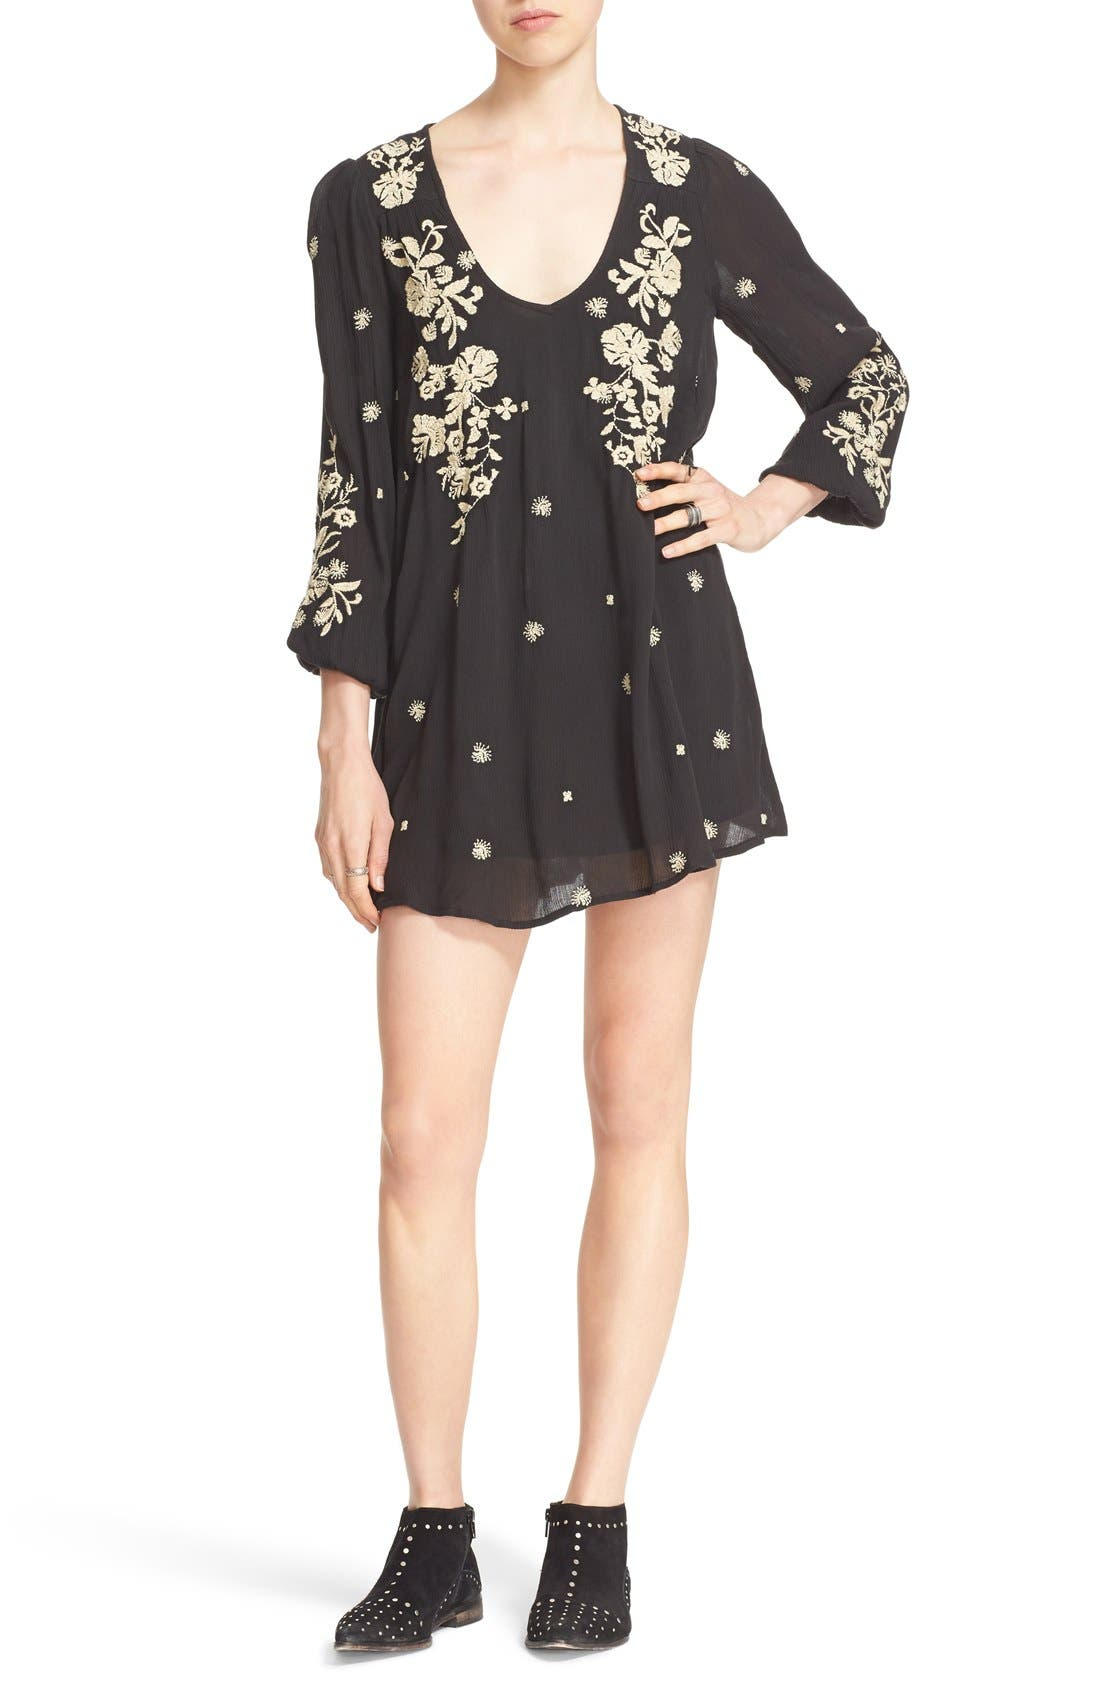 Alternate Image 1 Selected - Free People 'Sweet Tennessee' Embroidered Minidress